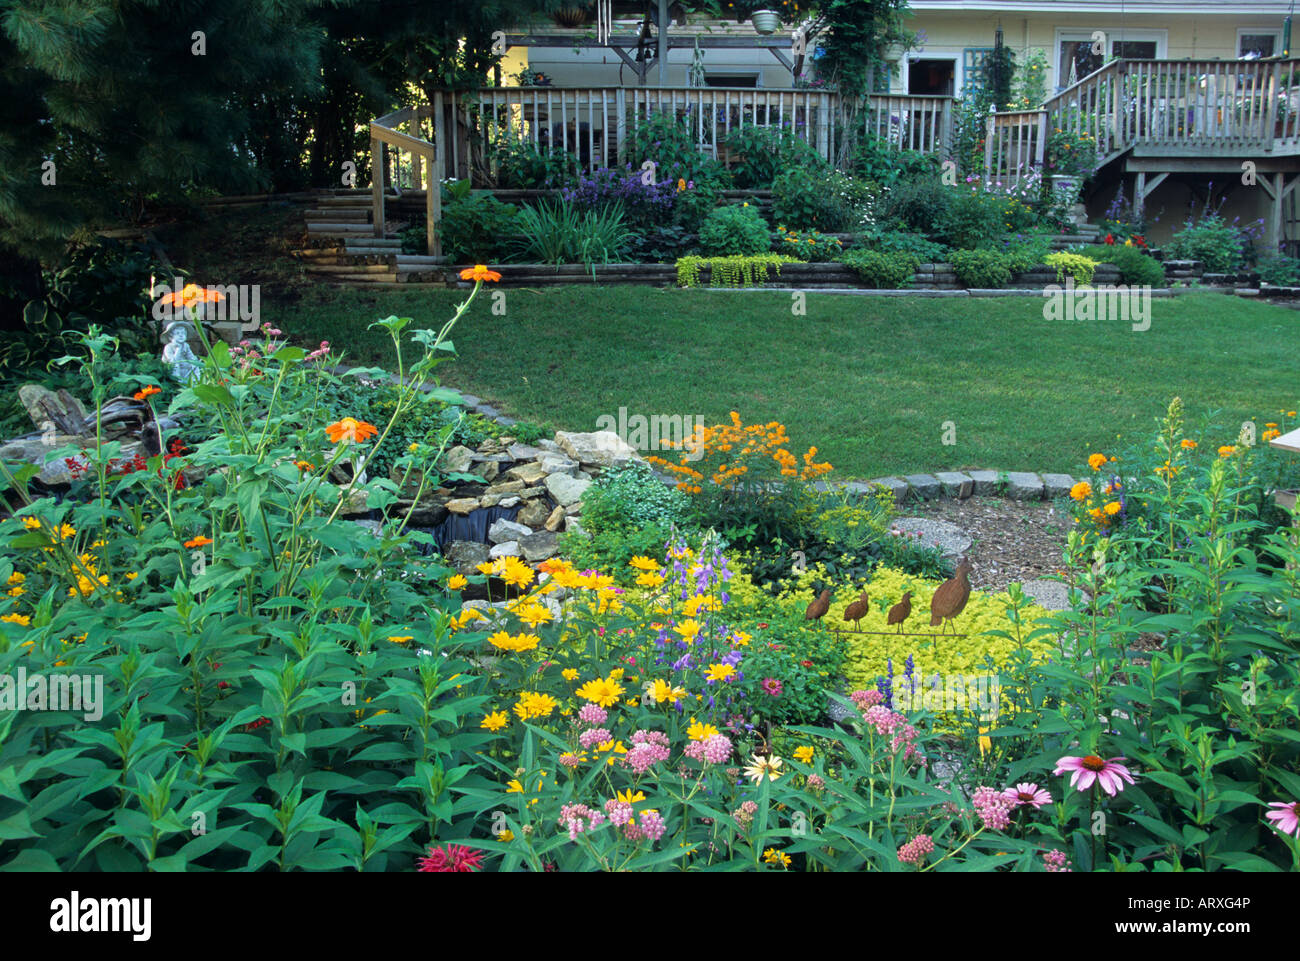 View Of Midwestern U S Garden In July With Terraced Flower Beds